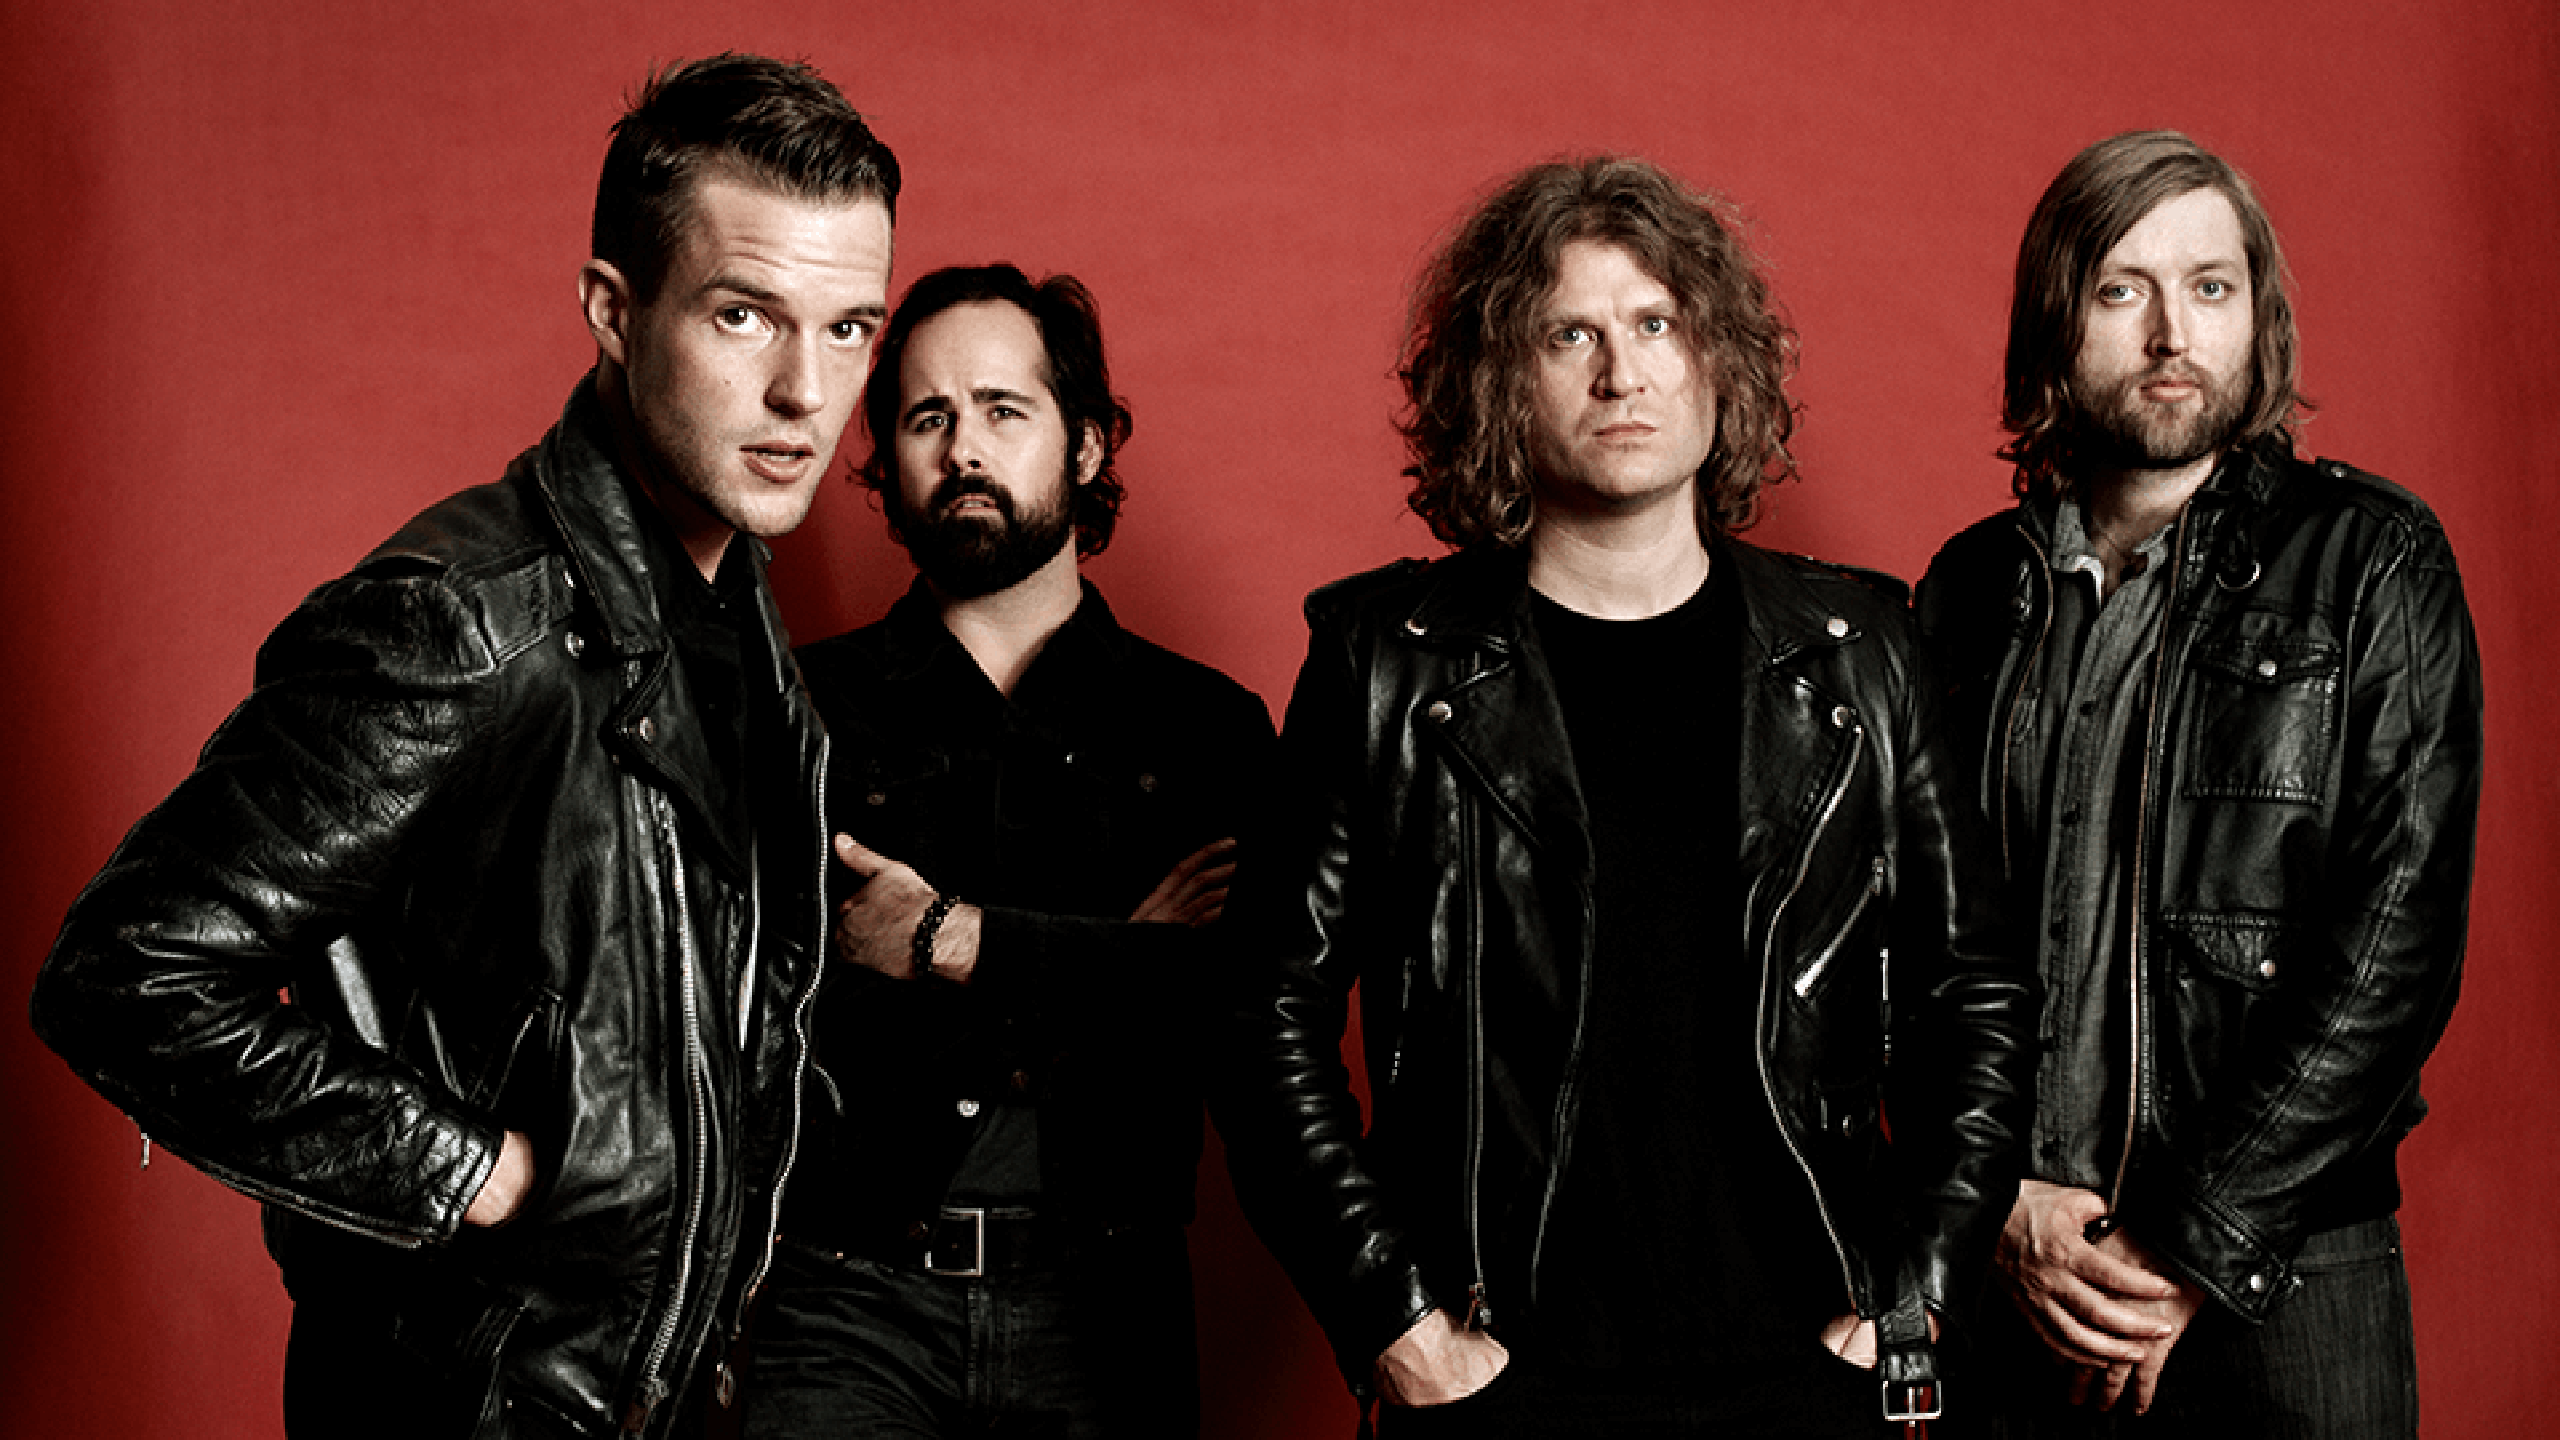 The Killers at Gorge Amphitheatre